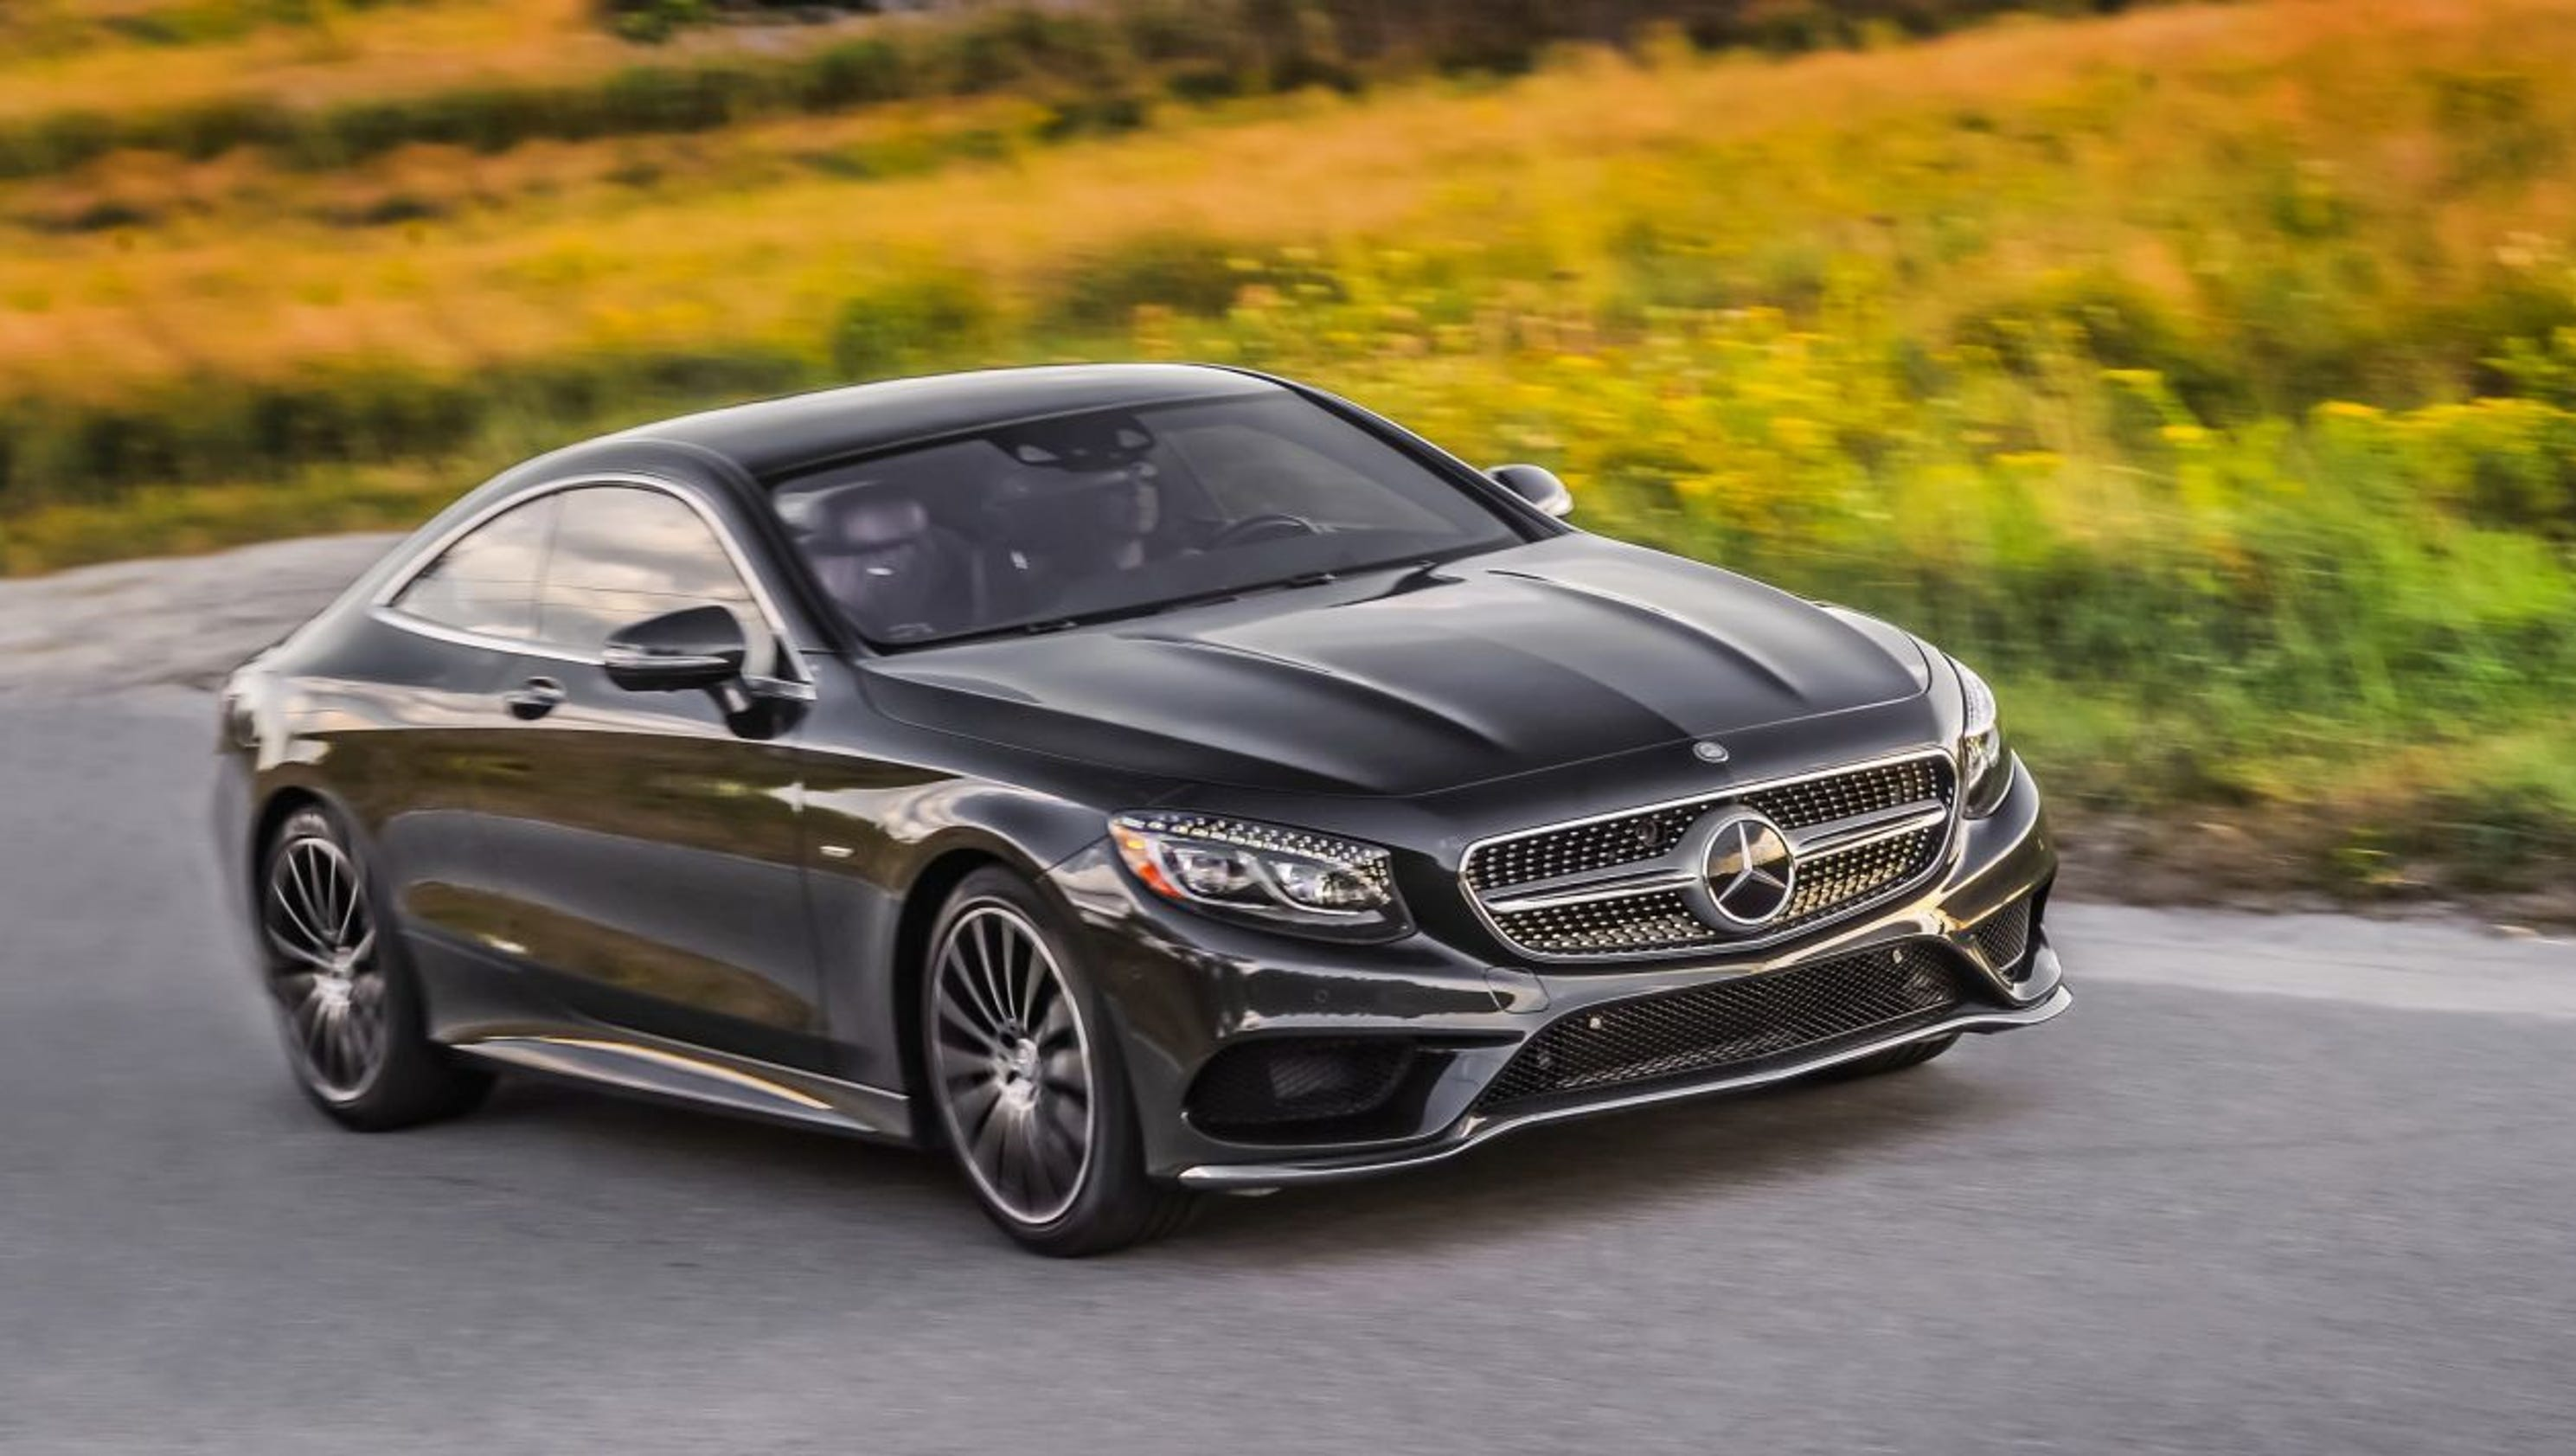 benz news auto coupe meet the mercedes new amg